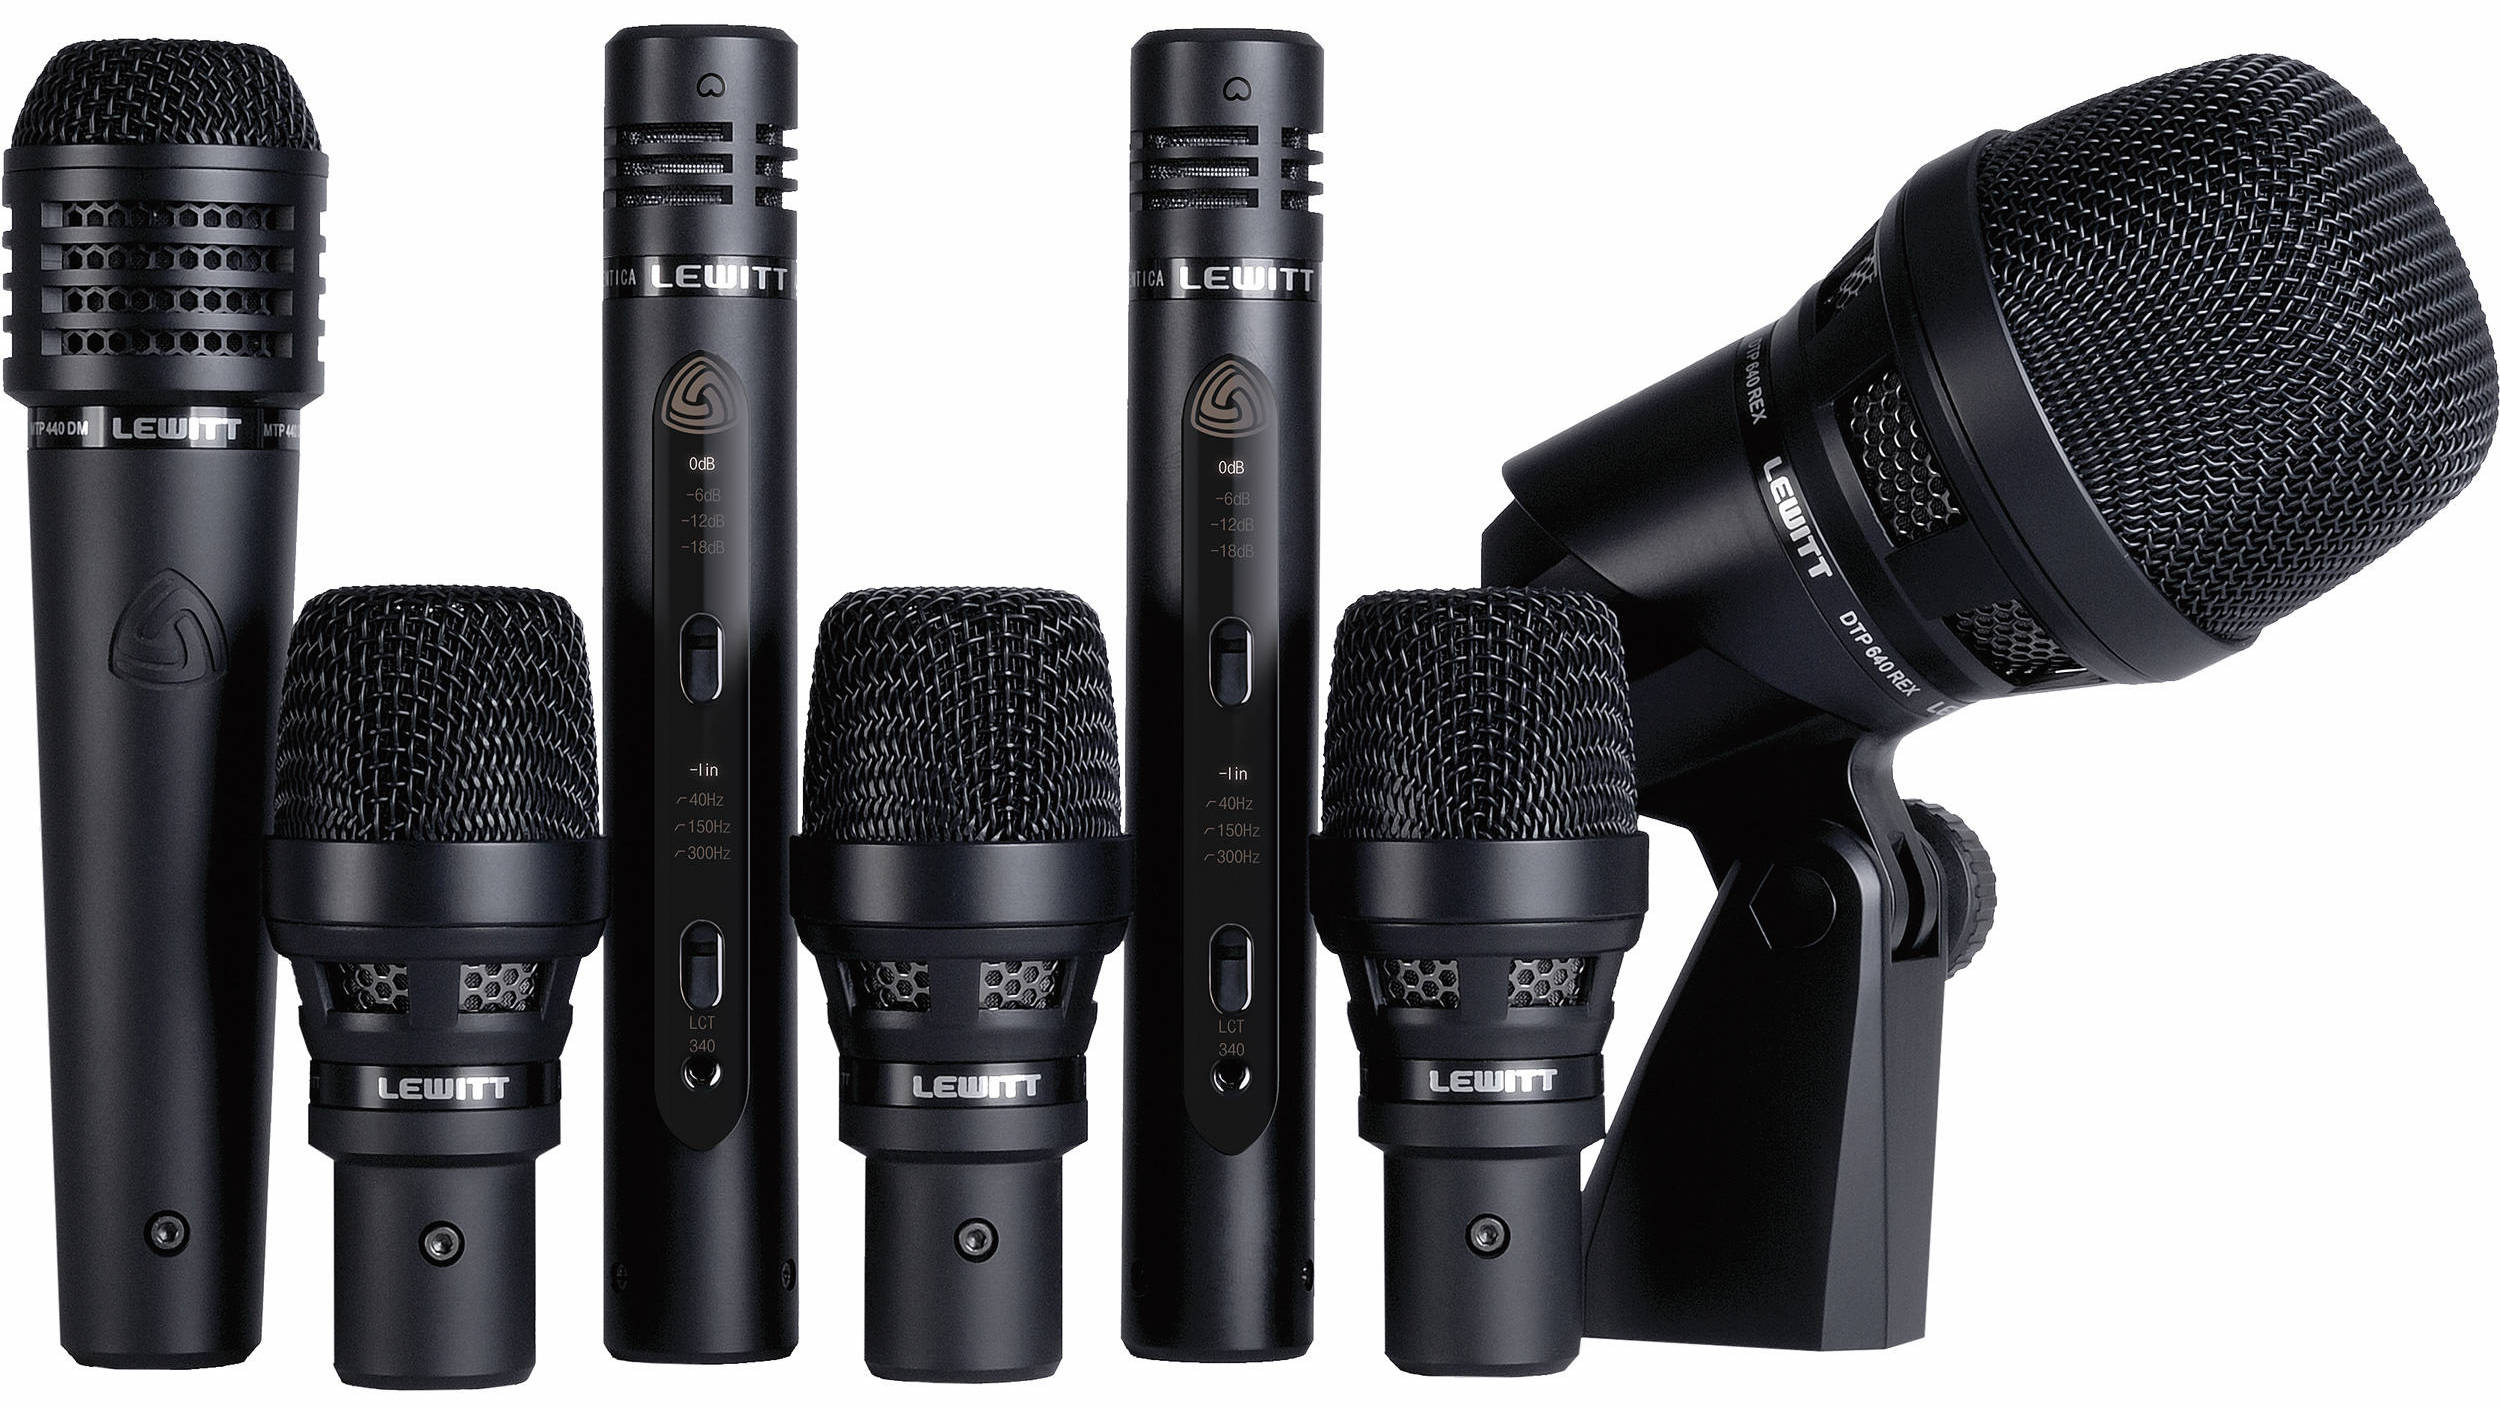 Best Drum Mic Set Budget : the best drum mic kits gearank ~ Hamham.info Haus und Dekorationen